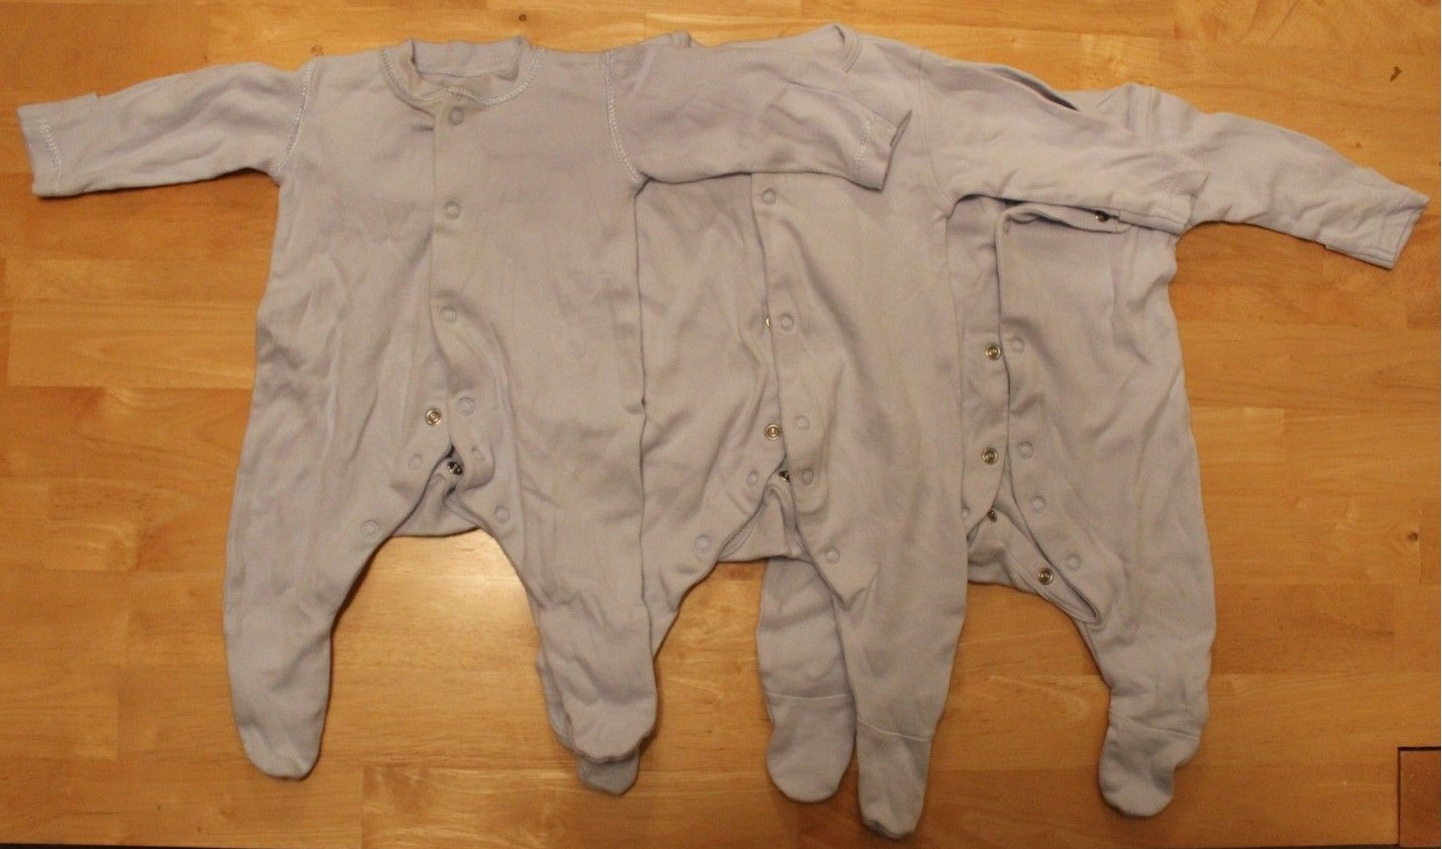 808a04ad9 TB-B-3 - Tiny Baby Boy Clothes 7.5 lbs Bundle 3 Baby grows + nappies size 1